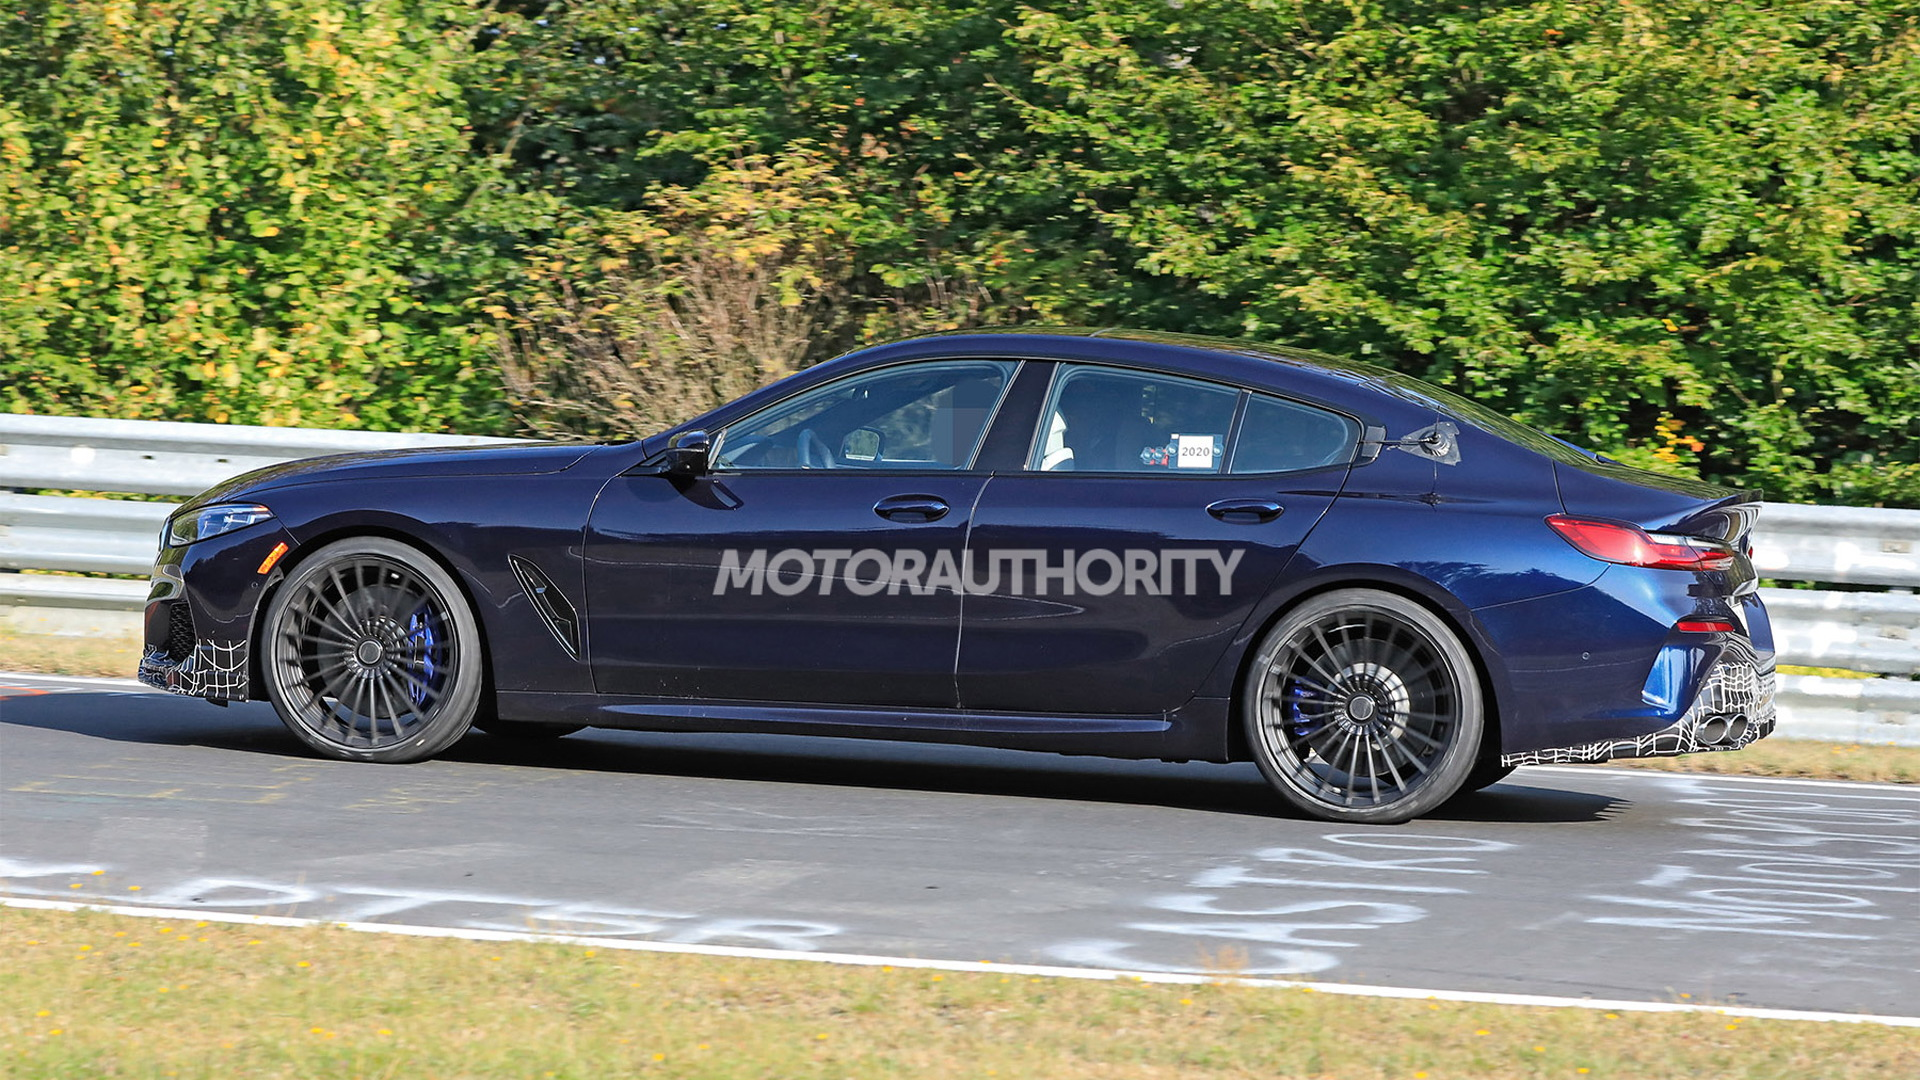 2022 BMW Alpina B8 Gran Coupe spy shots - Photo credit: S. Baldauf/SB-Medien